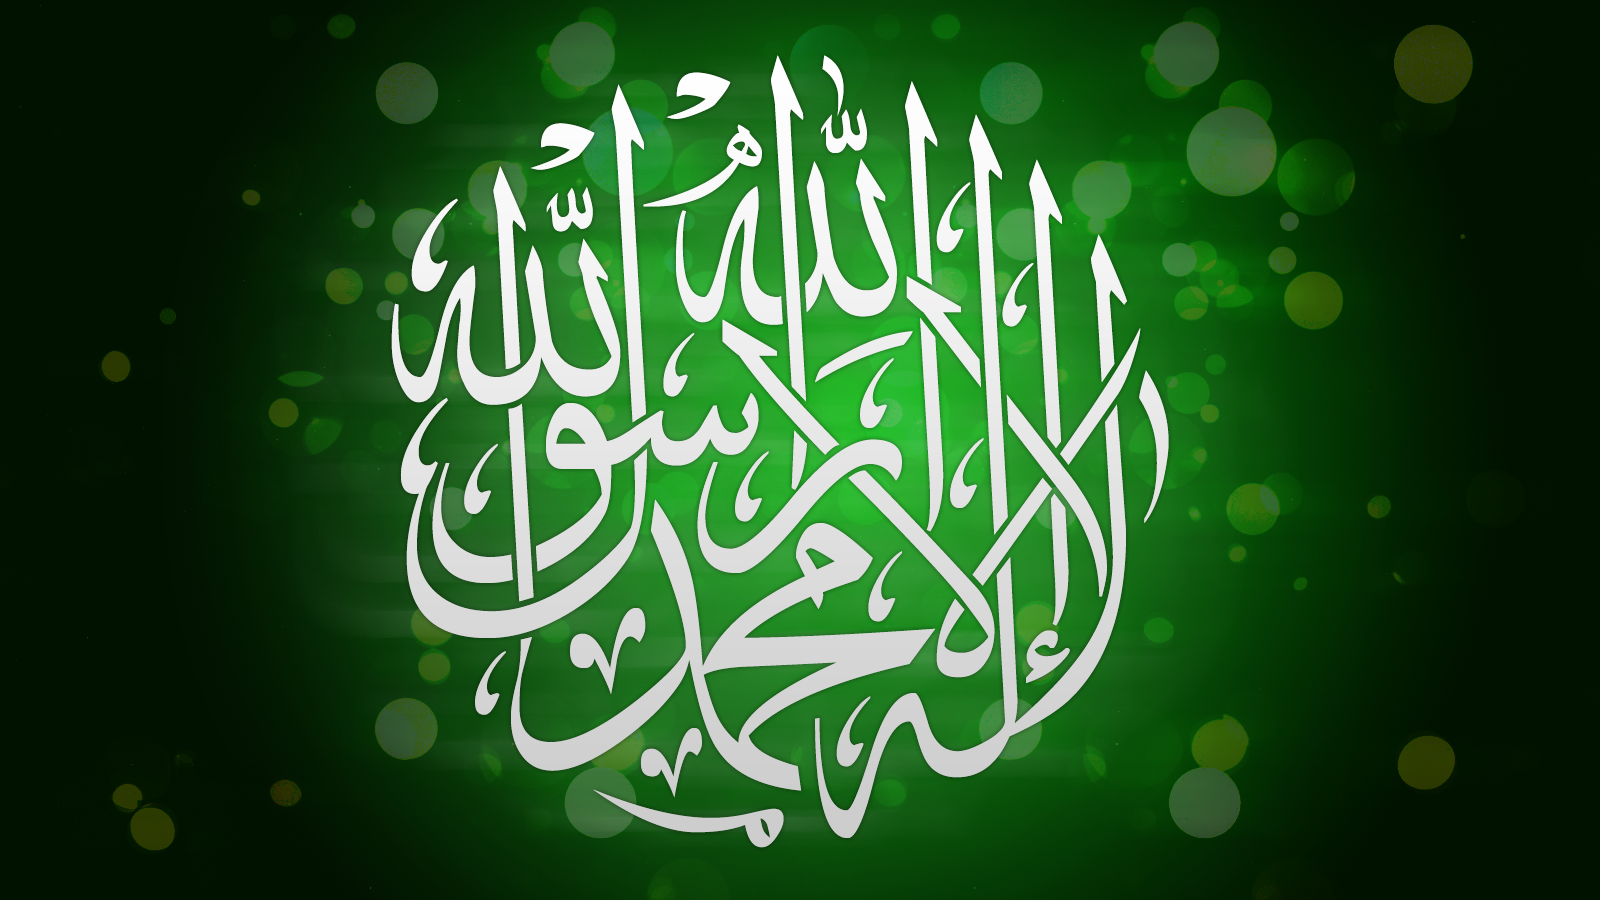 Islamic Software  Wallpaper Greetings Download March 2013